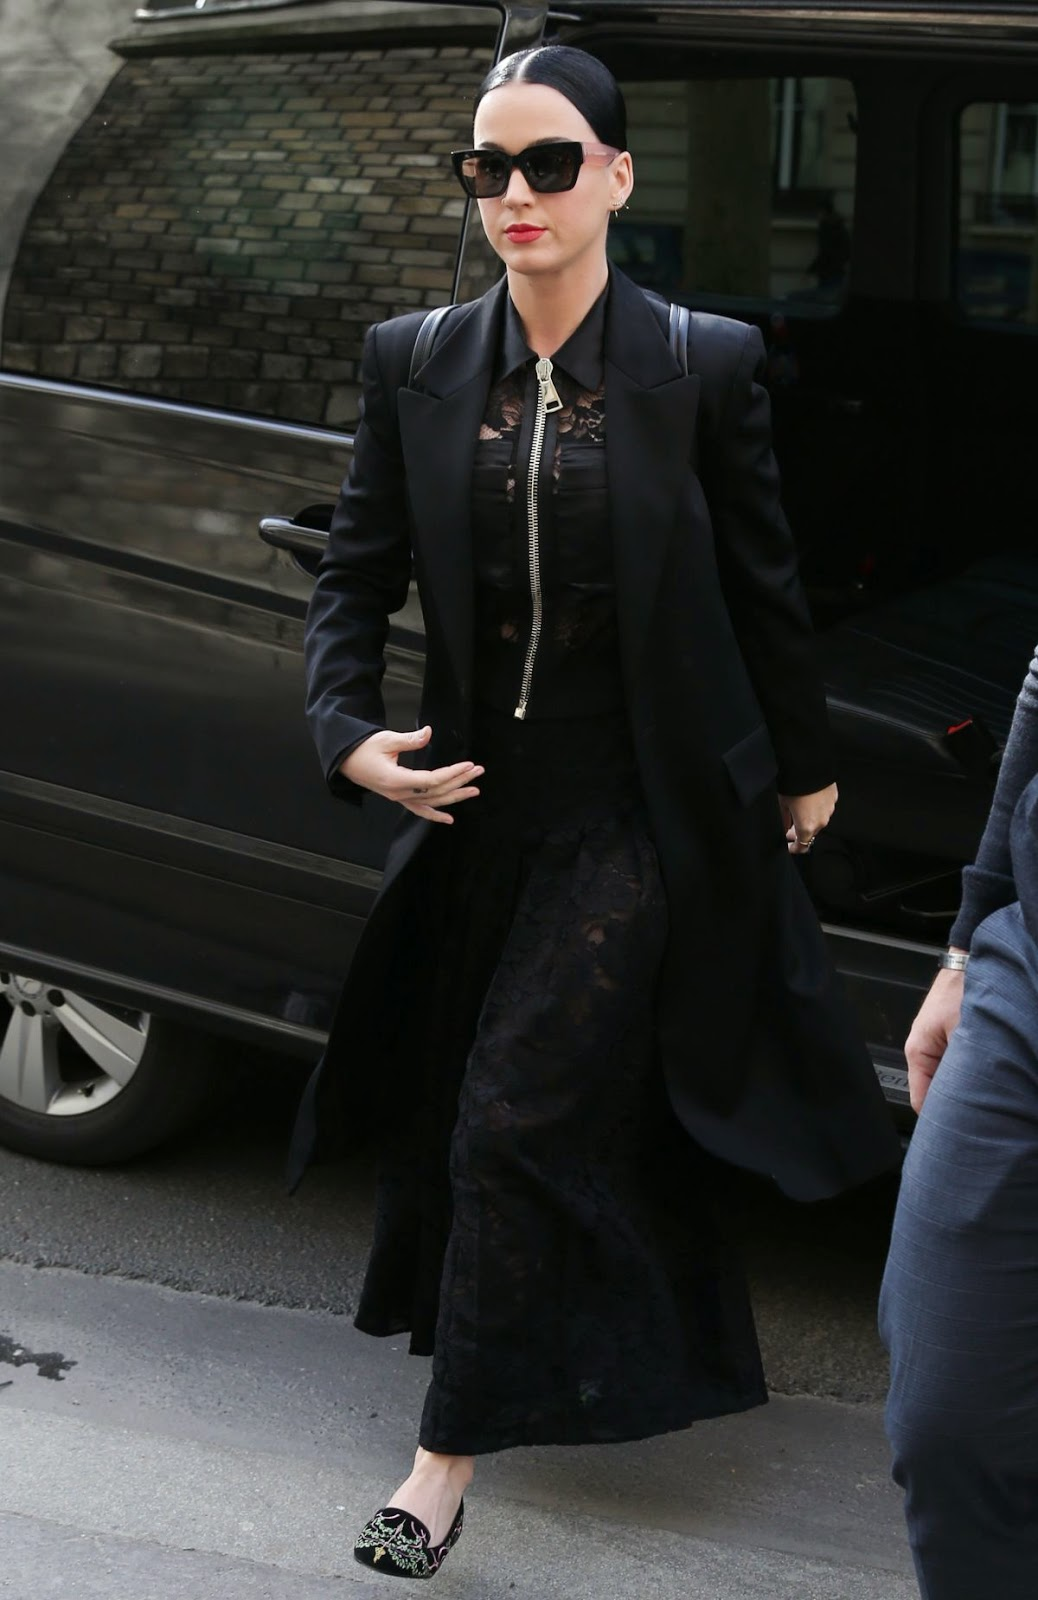 Singer songwriter, Actress @ Katy Perry Out And About In Paris